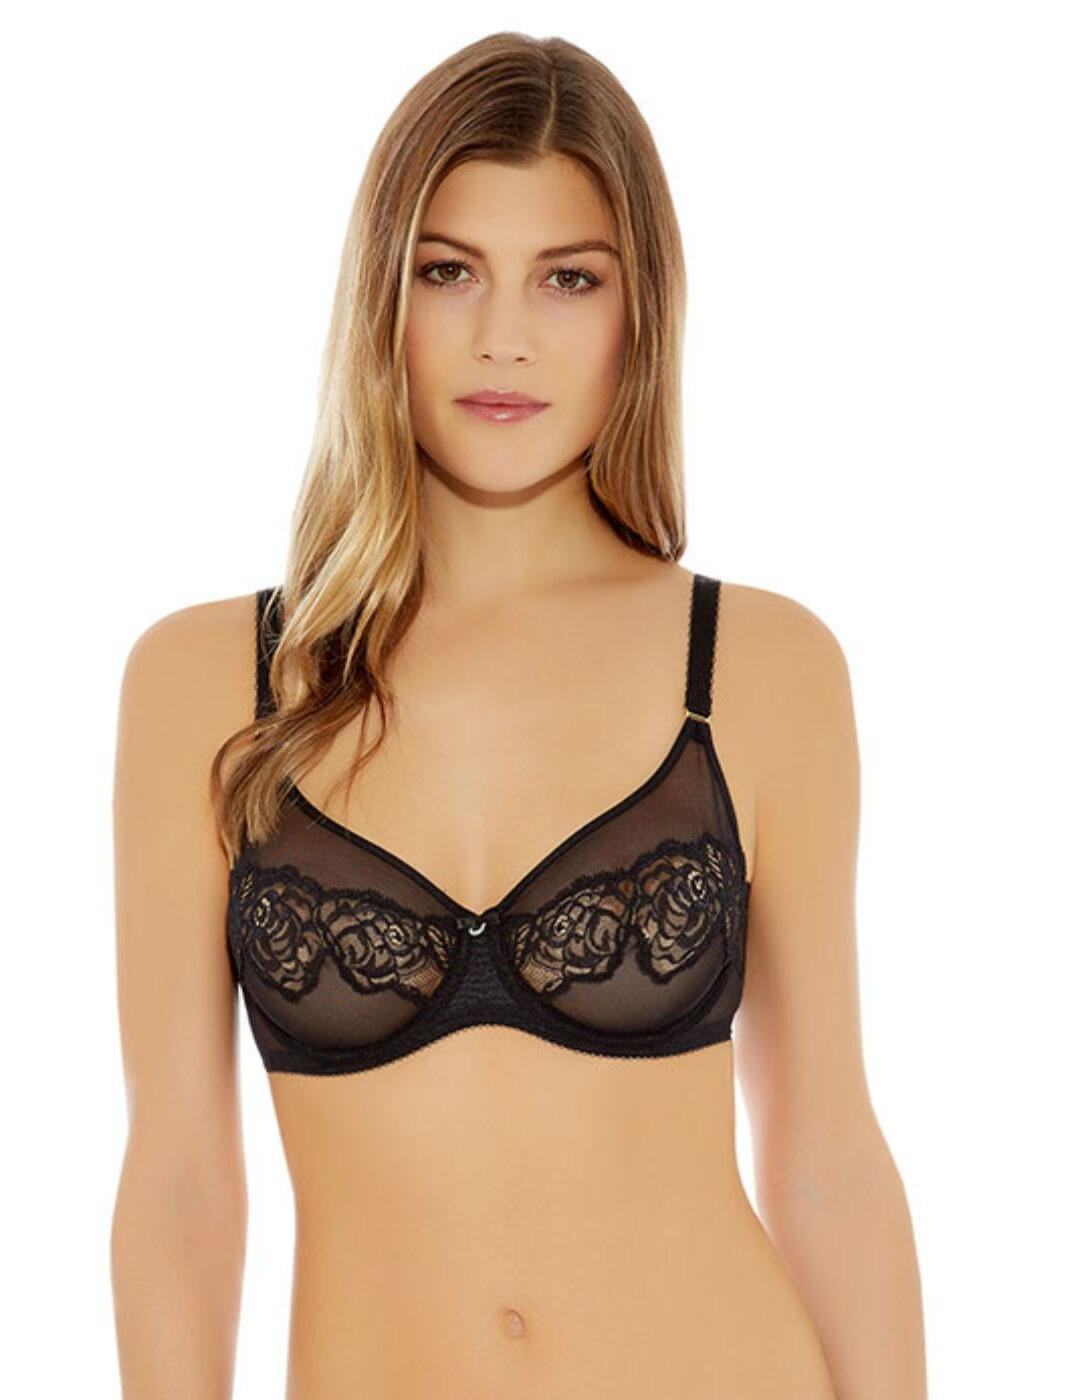 855253 Wacoal Sheer Enough Underwired Bra - 855253 Black